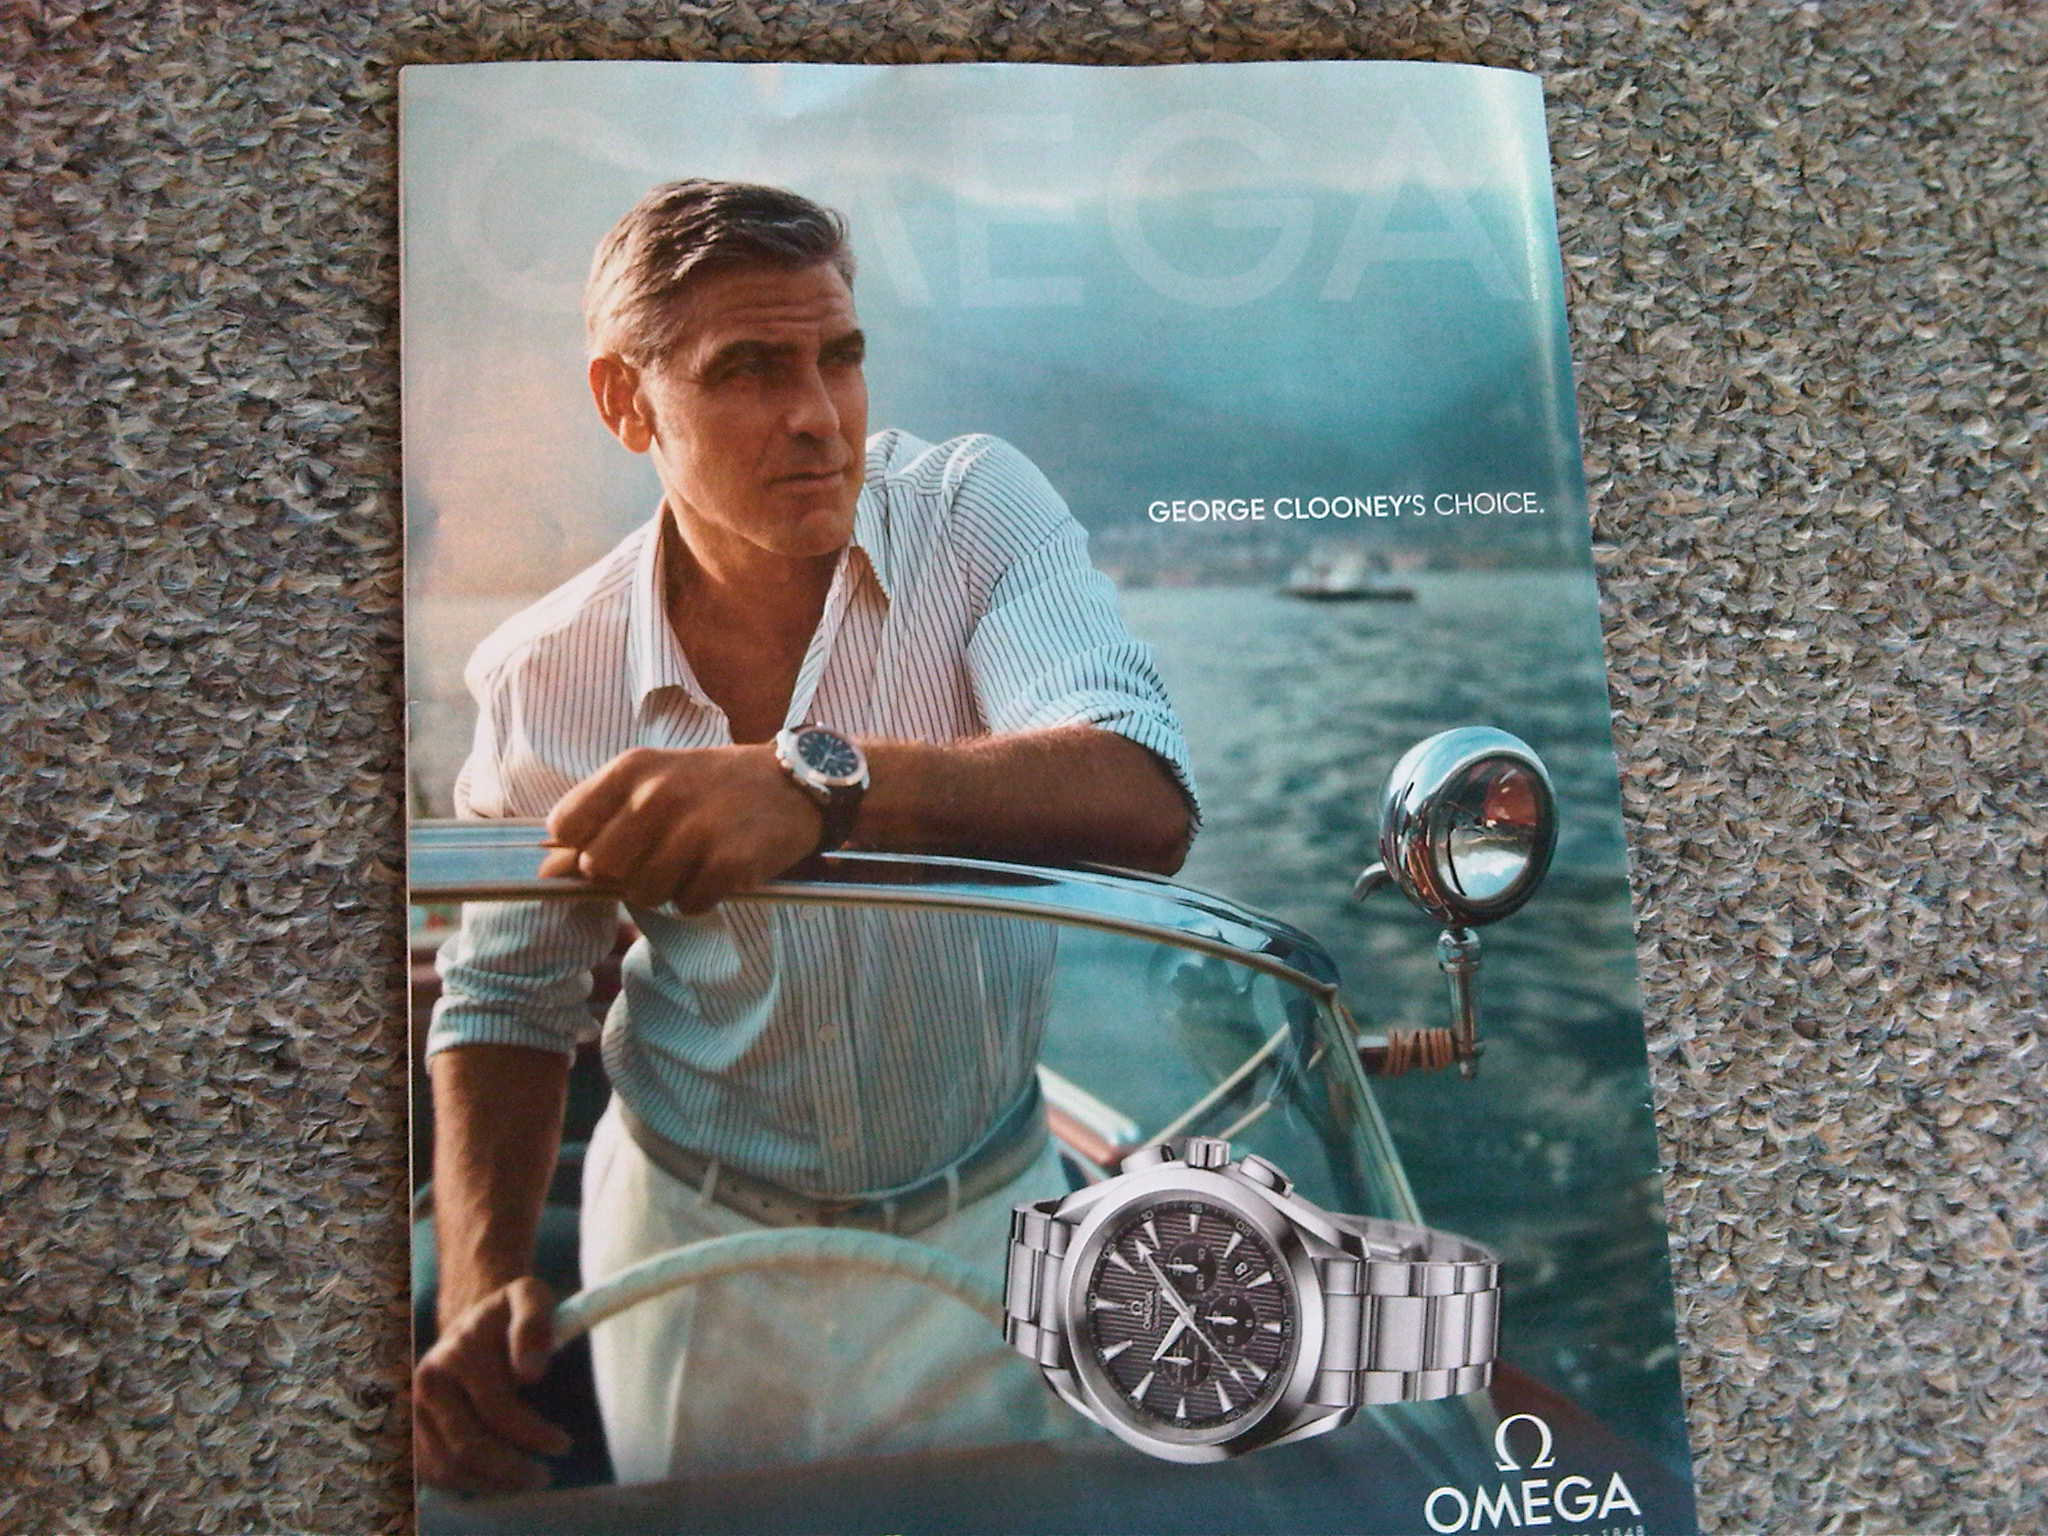 Nice New Advert For Omega Watches And George Clooney